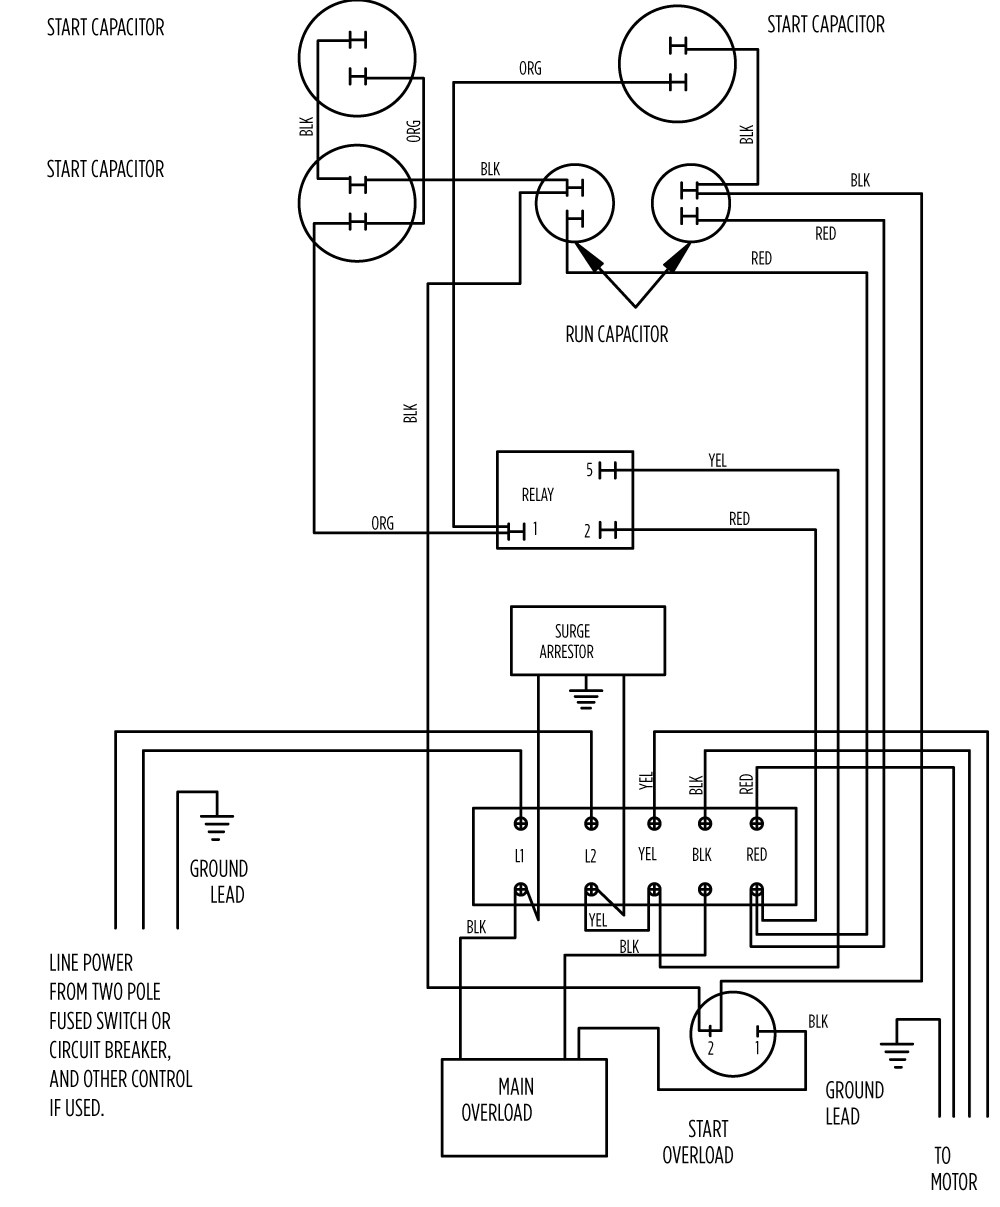 aim manual page 57 single phase motors and controls motor rh franklinwater com 220V Plug Wiring 220 Well Pump Wiring Diagram